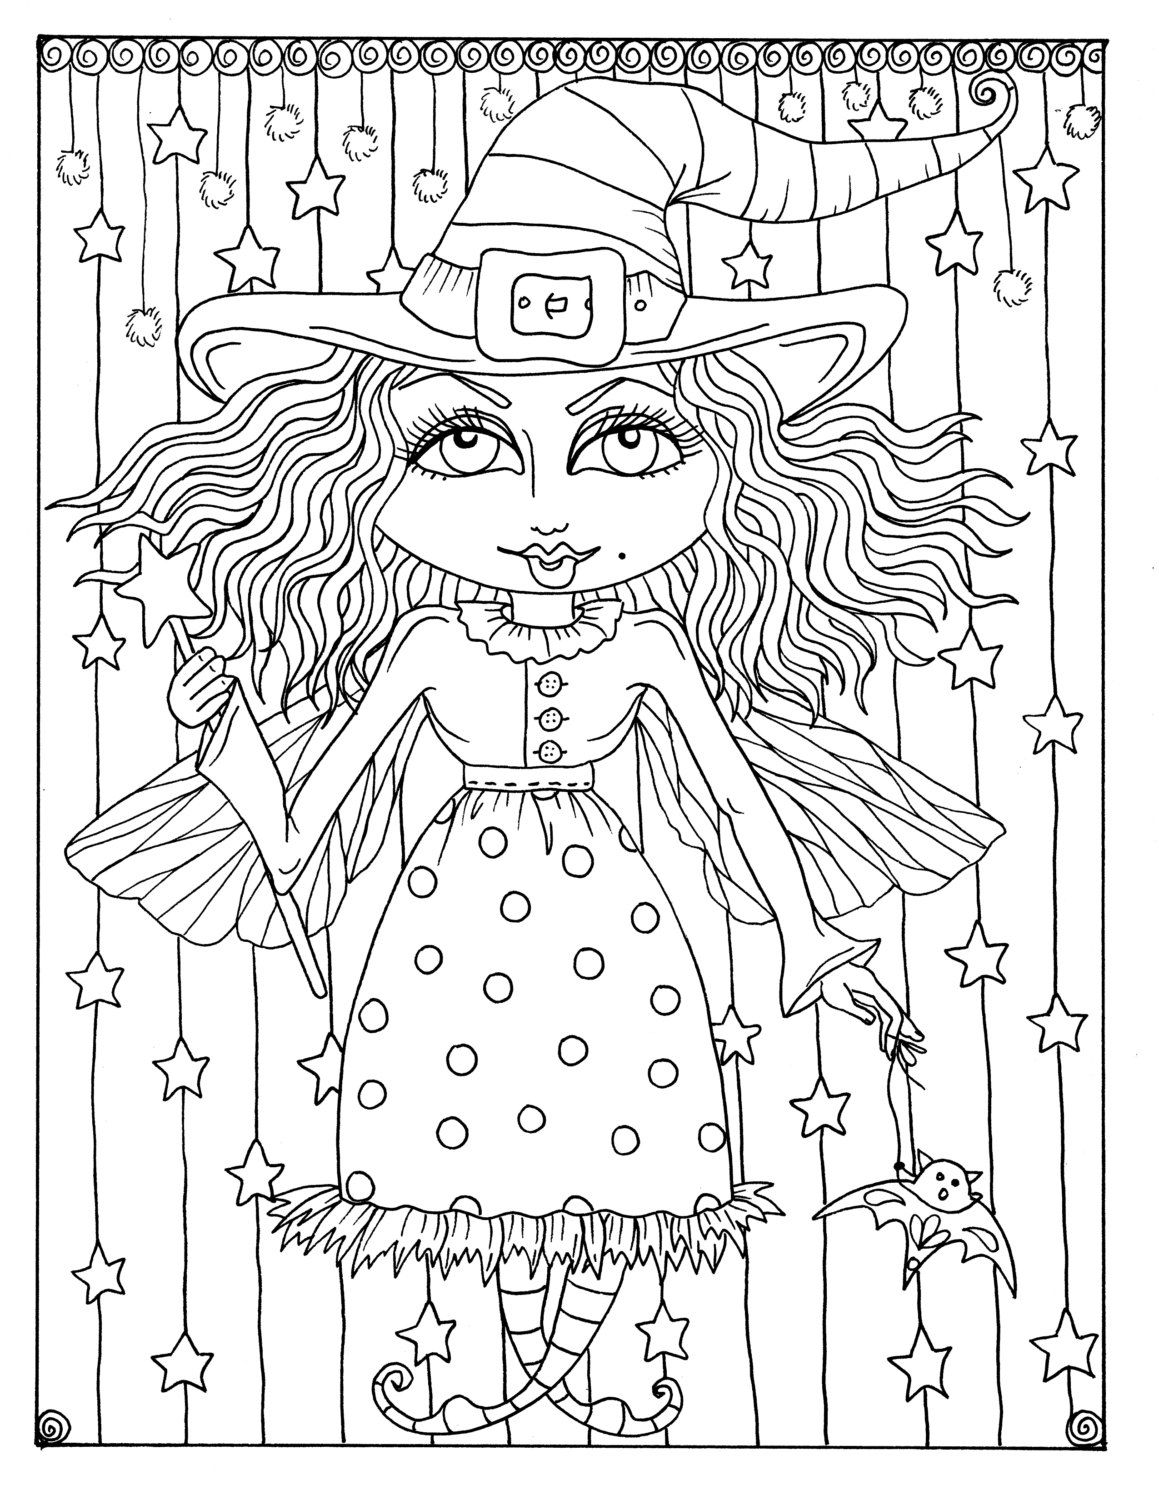 Pin by Ceciley Marlar on Halloween Coloring Pages | Pinterest ...